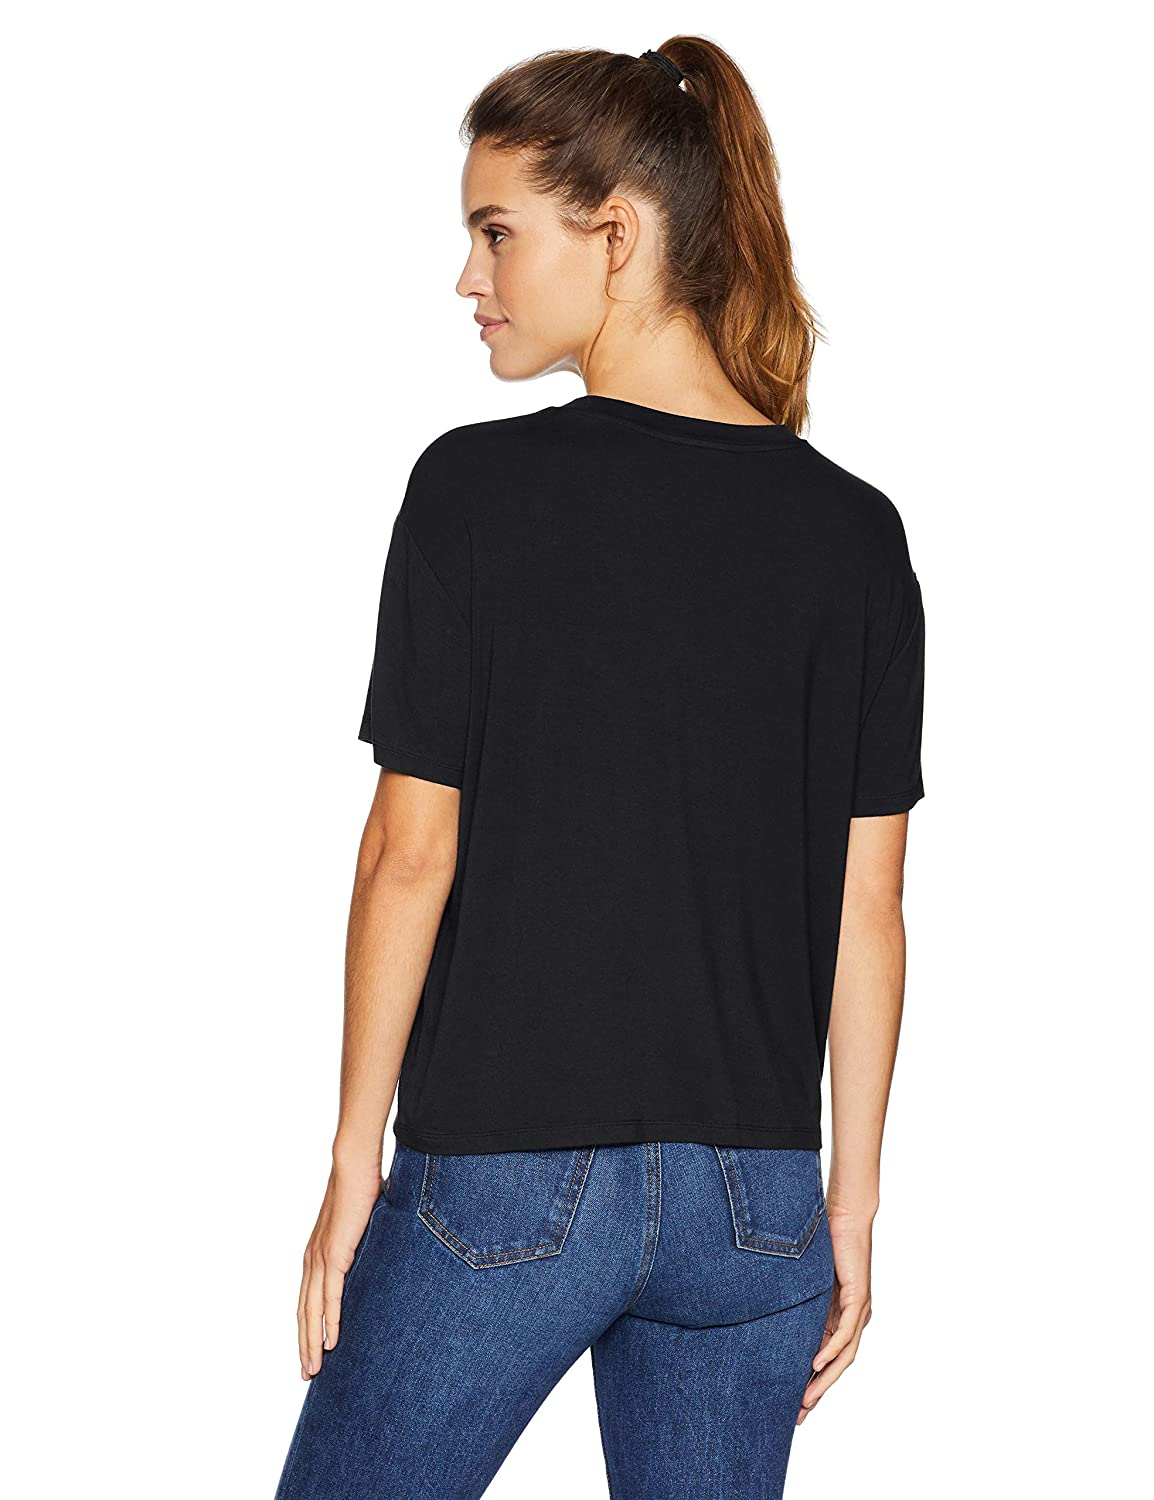 831a727d62fcf Amazon.com: Daily Ritual Women's Jersey Short-Sleeve Boxy Pocket Tee:  Clothing